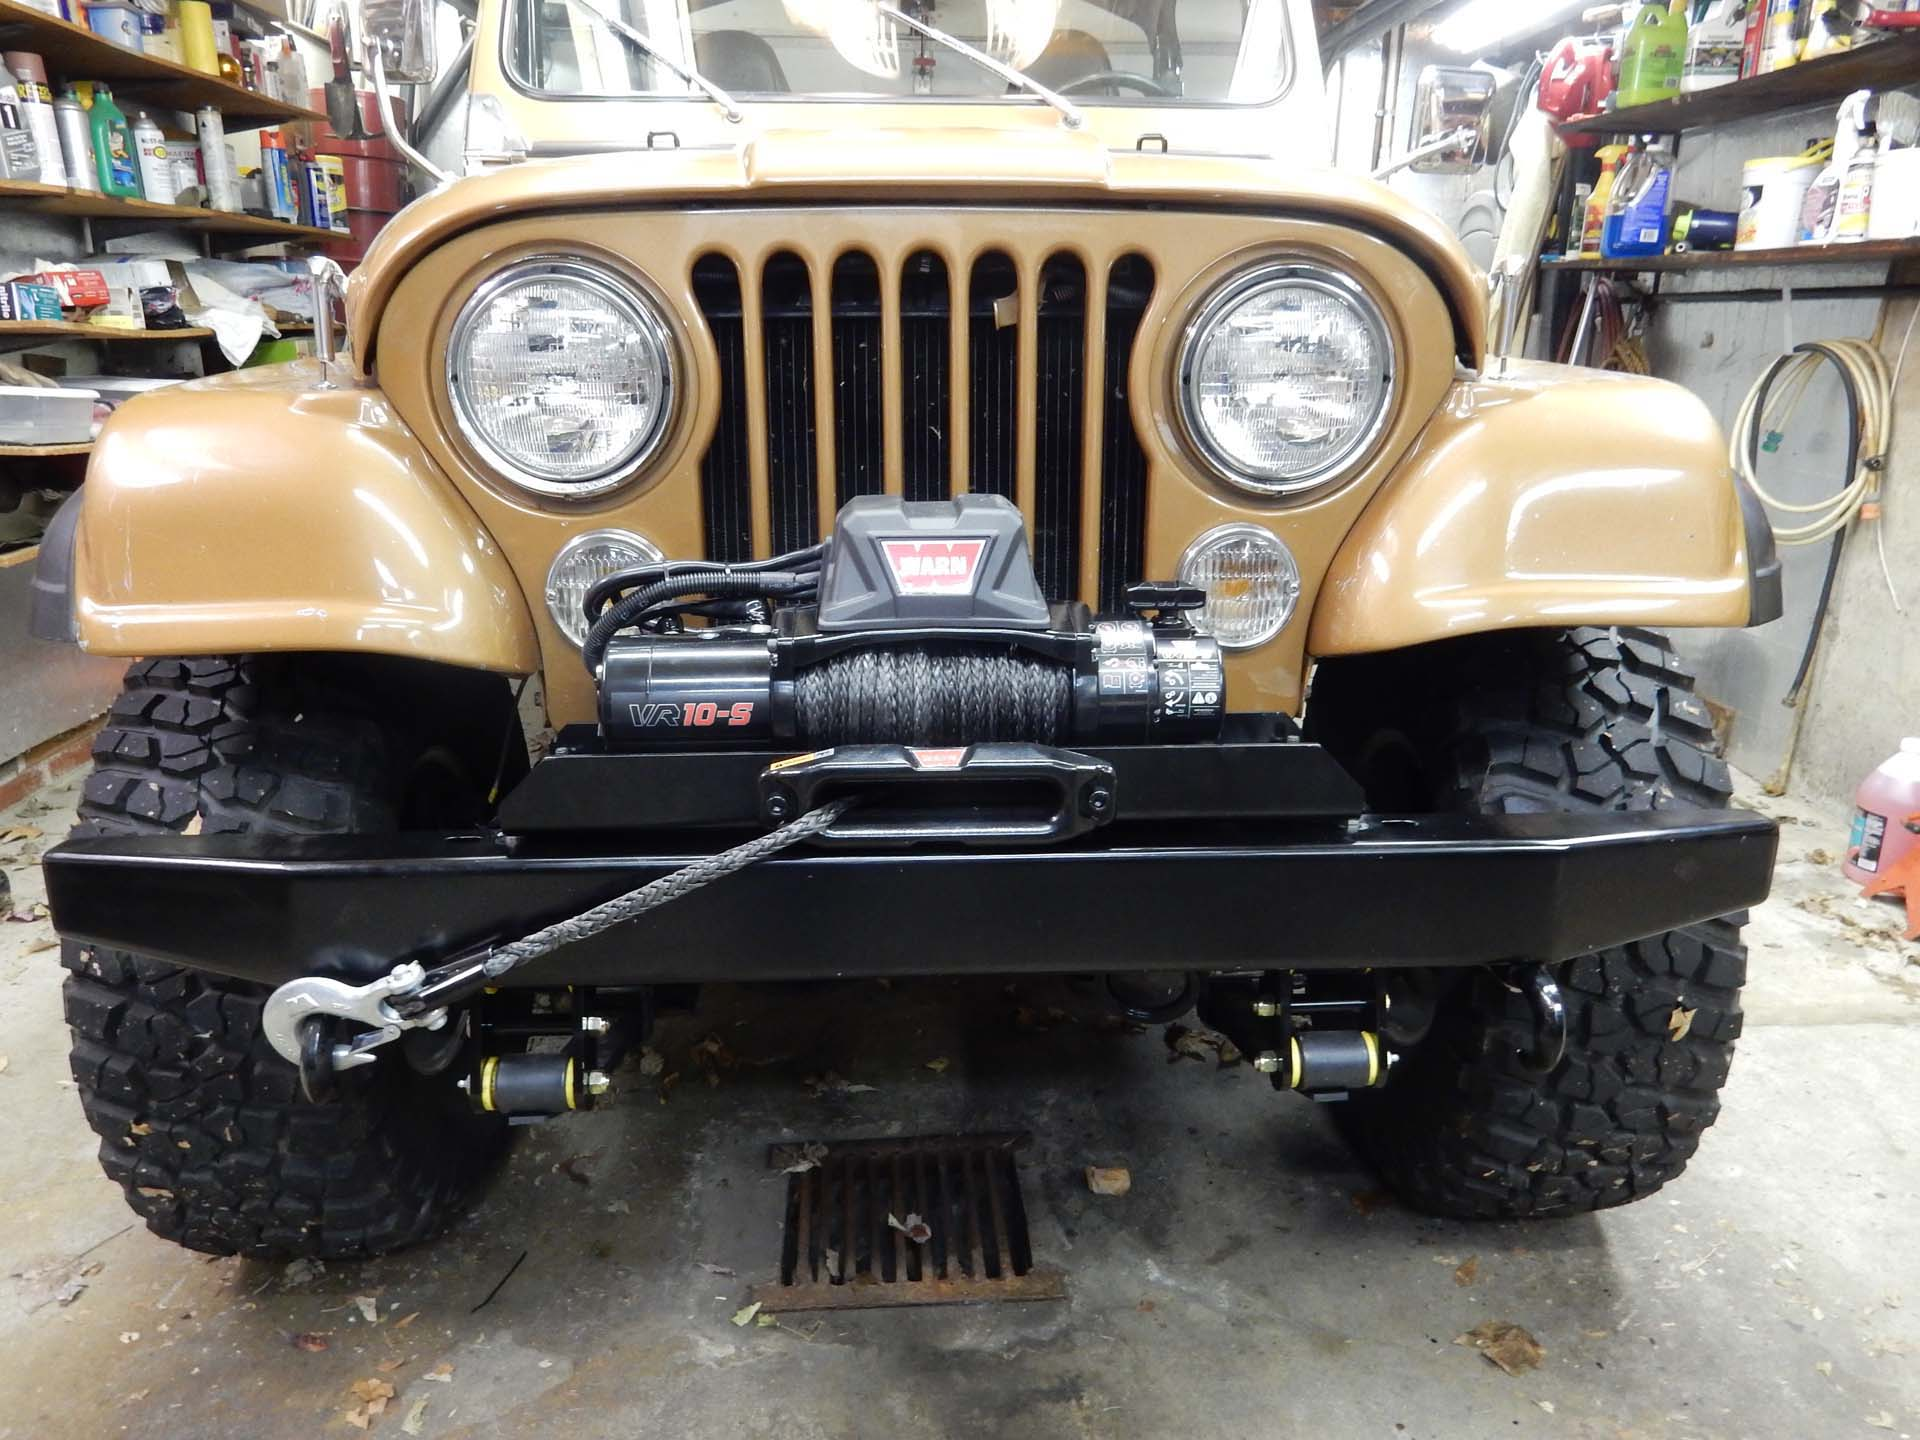 Warn Vr10s Winch Wiring On A Cj How To Wire Jeep While Its Not Necessary Disconnect The When In Use It Is Practice Performed By Most Jeepers